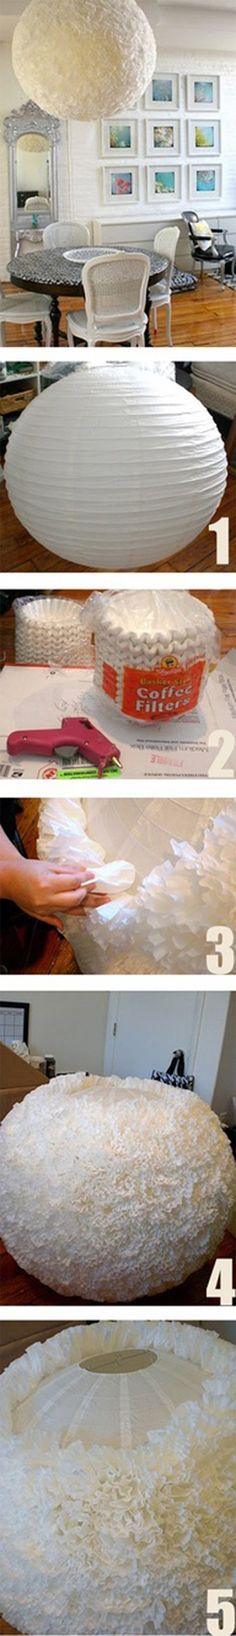 Lamp light diy paper